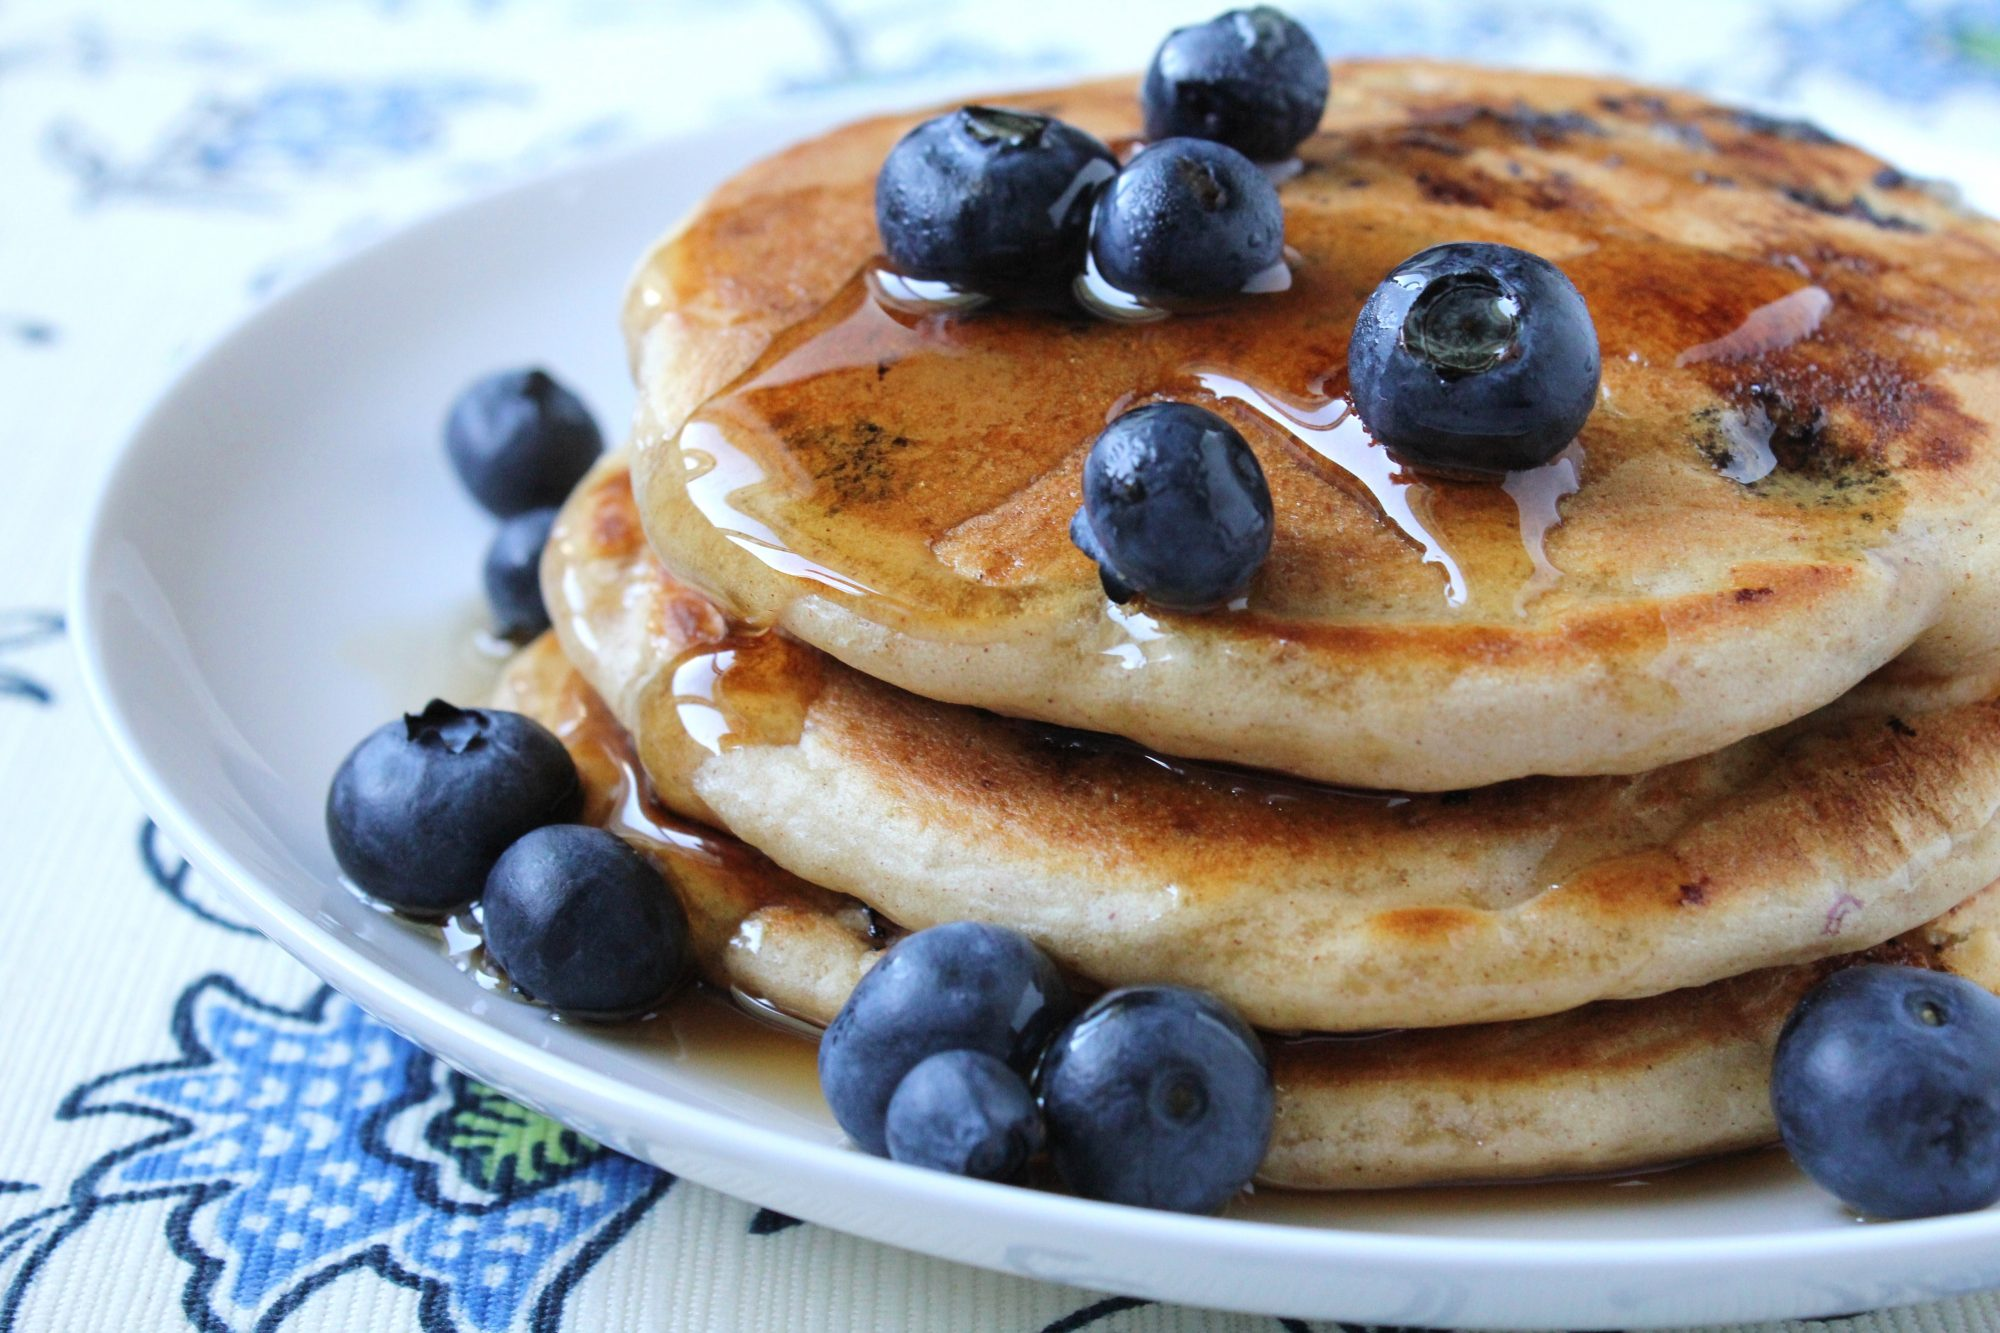 A stack of pancakes topped with fresh blueberries and maple syrup